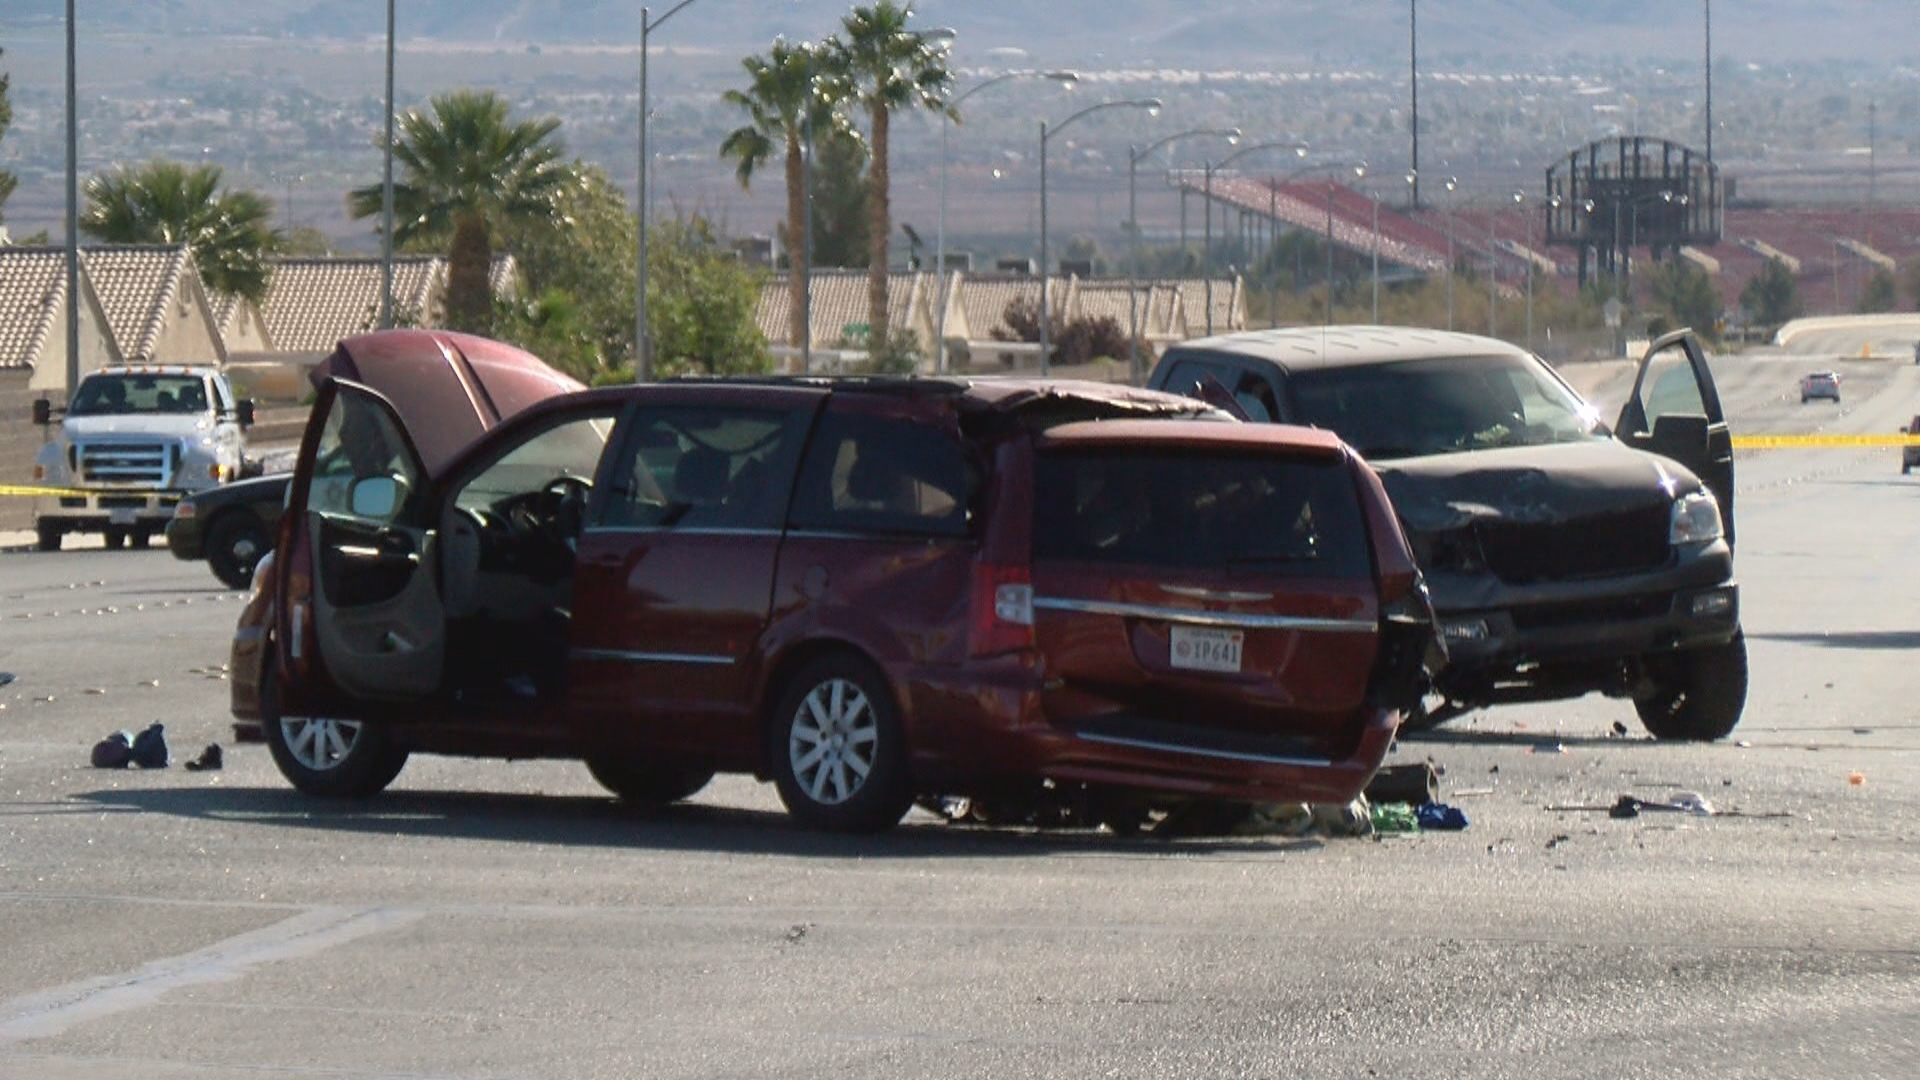 Police investigate a deadly crash Monday, December 4, 2017, at the intersection of Broadbent Boulevard and Cherry Street in Las Vegas. (Norberto Arroyo/KSNV)